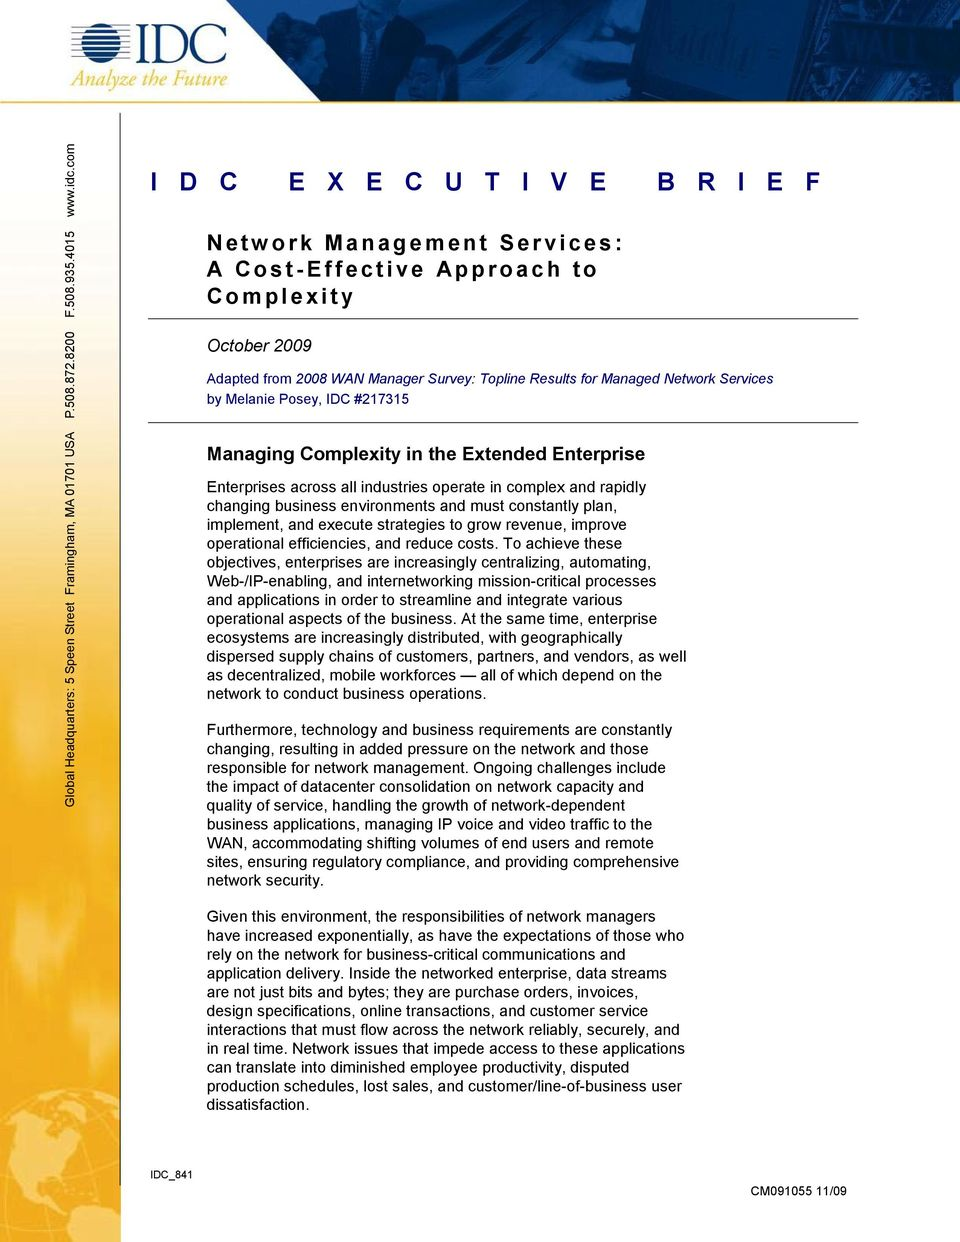 Services by Melanie Posey, IDC #217315 Managing Complexity in the Extended Enterprise Enterprises across all industries operate in complex and rapidly changing business environments and must